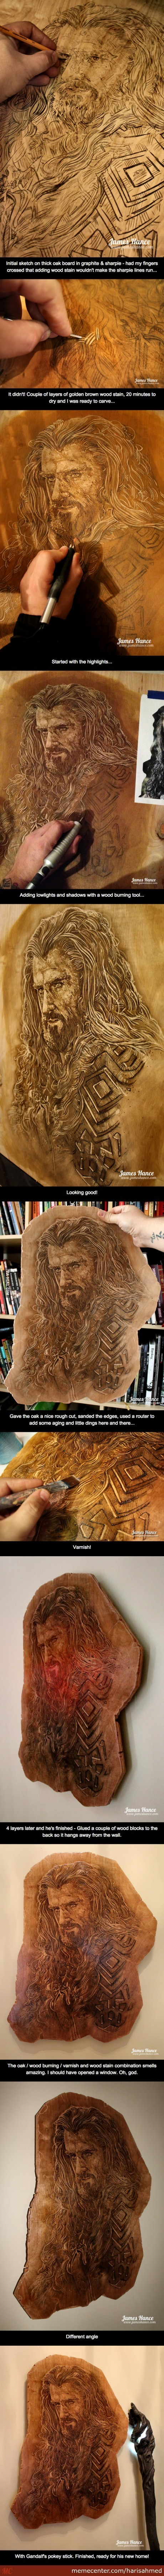 Carving Thorin Oakenshield Into Oak